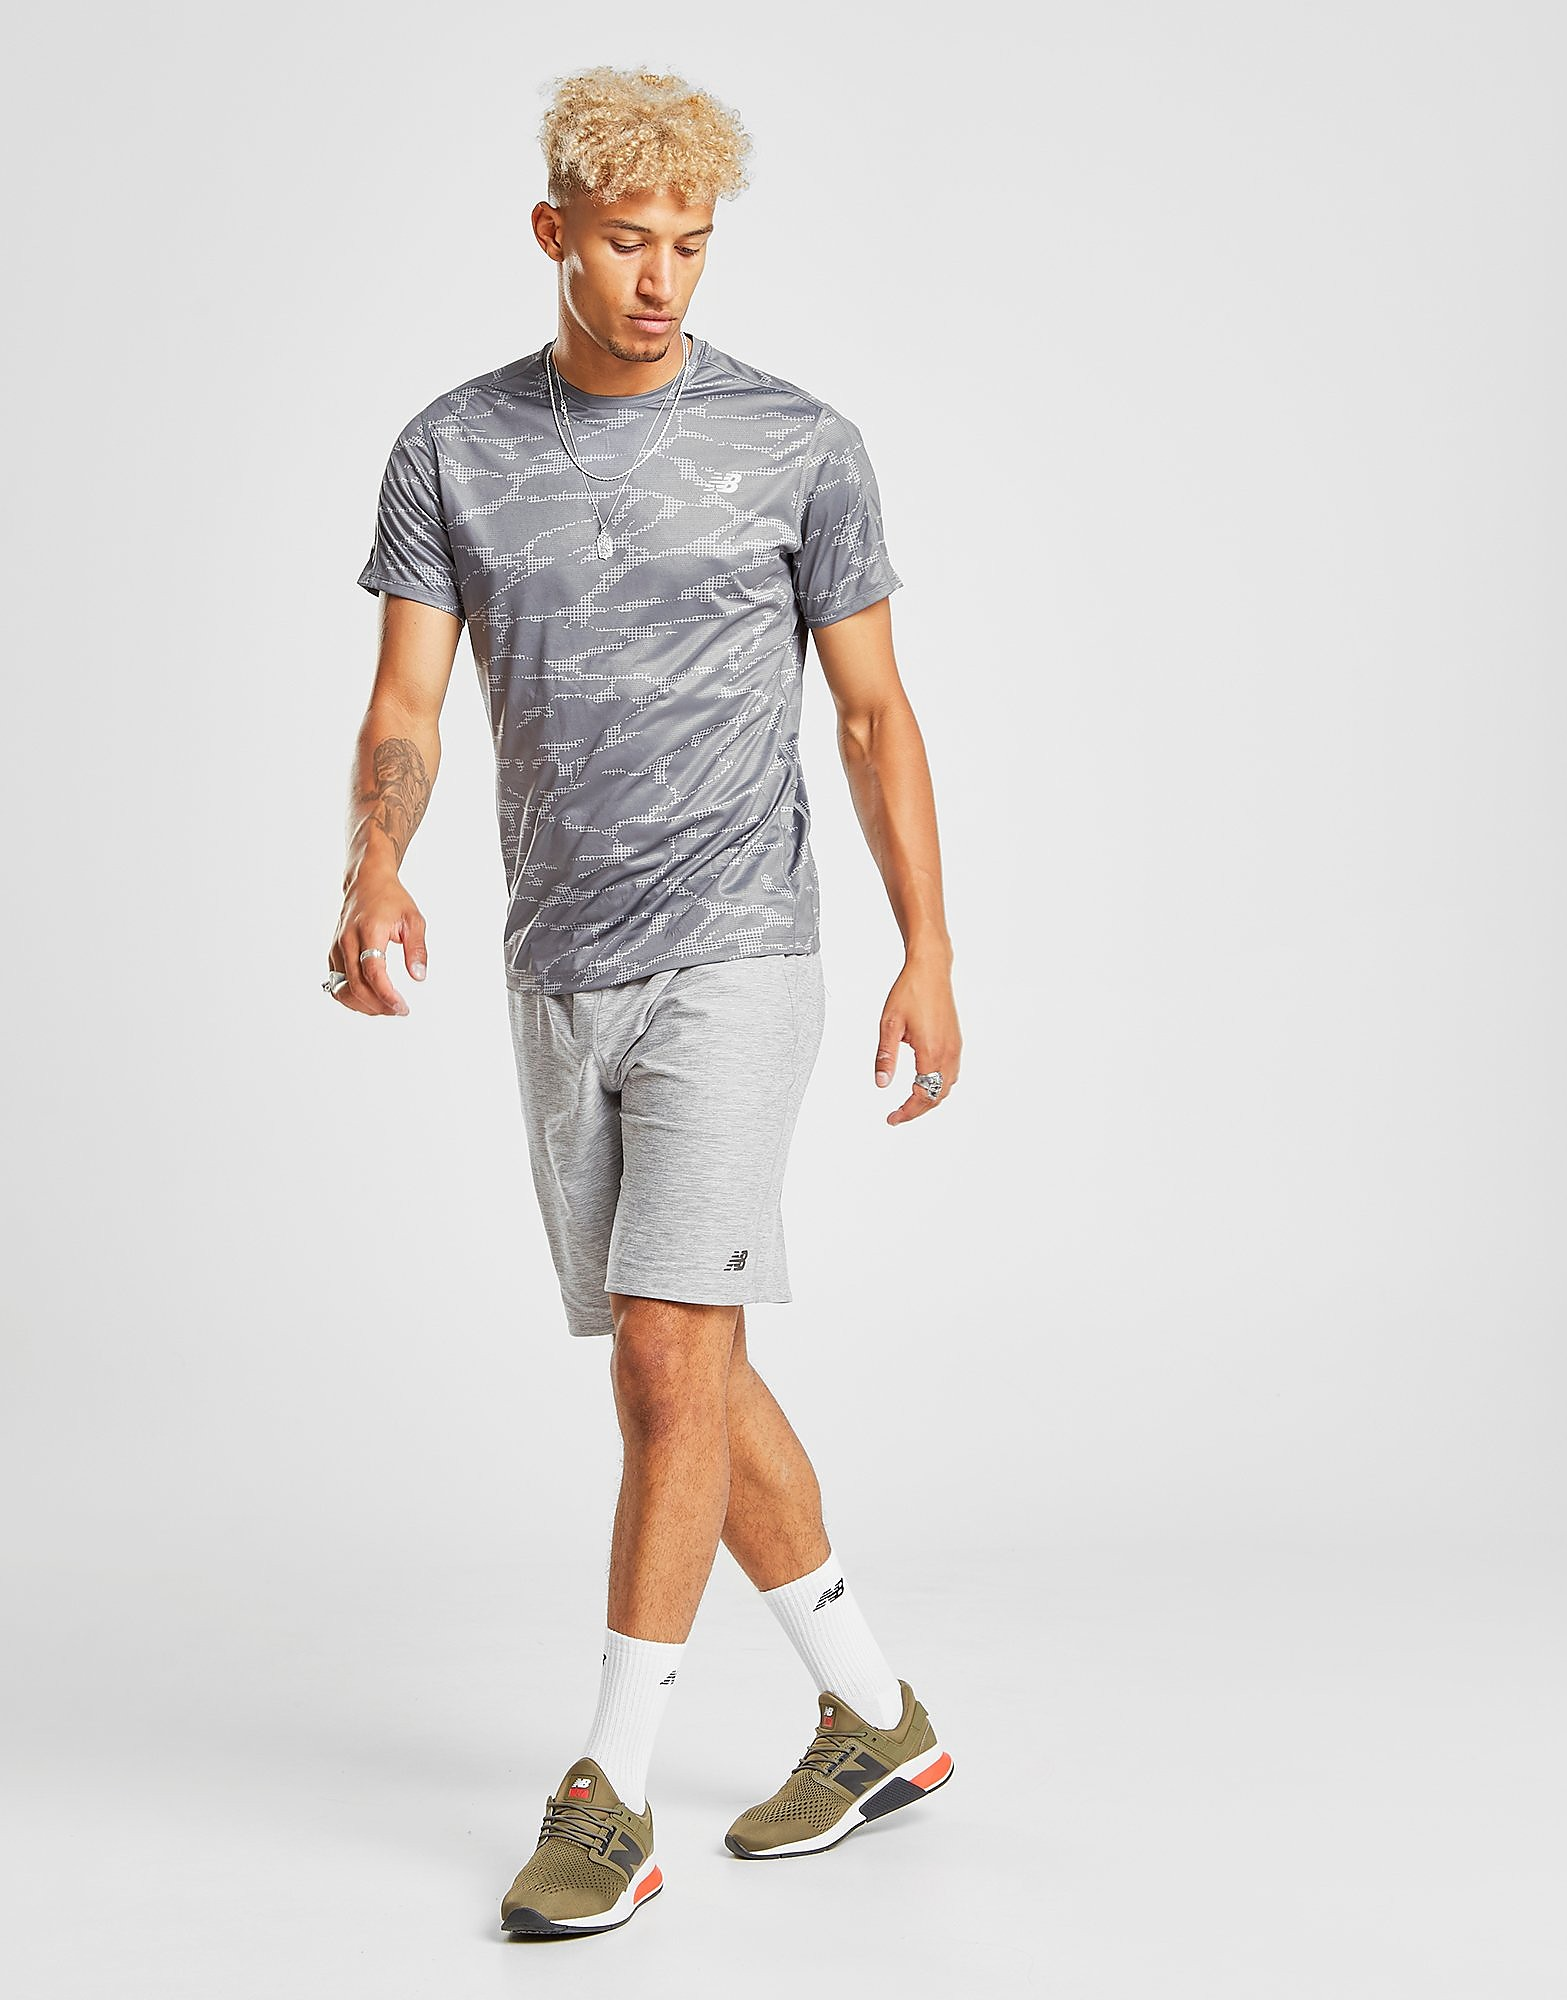 New Balance Accelerate All Over Print T-Shirt